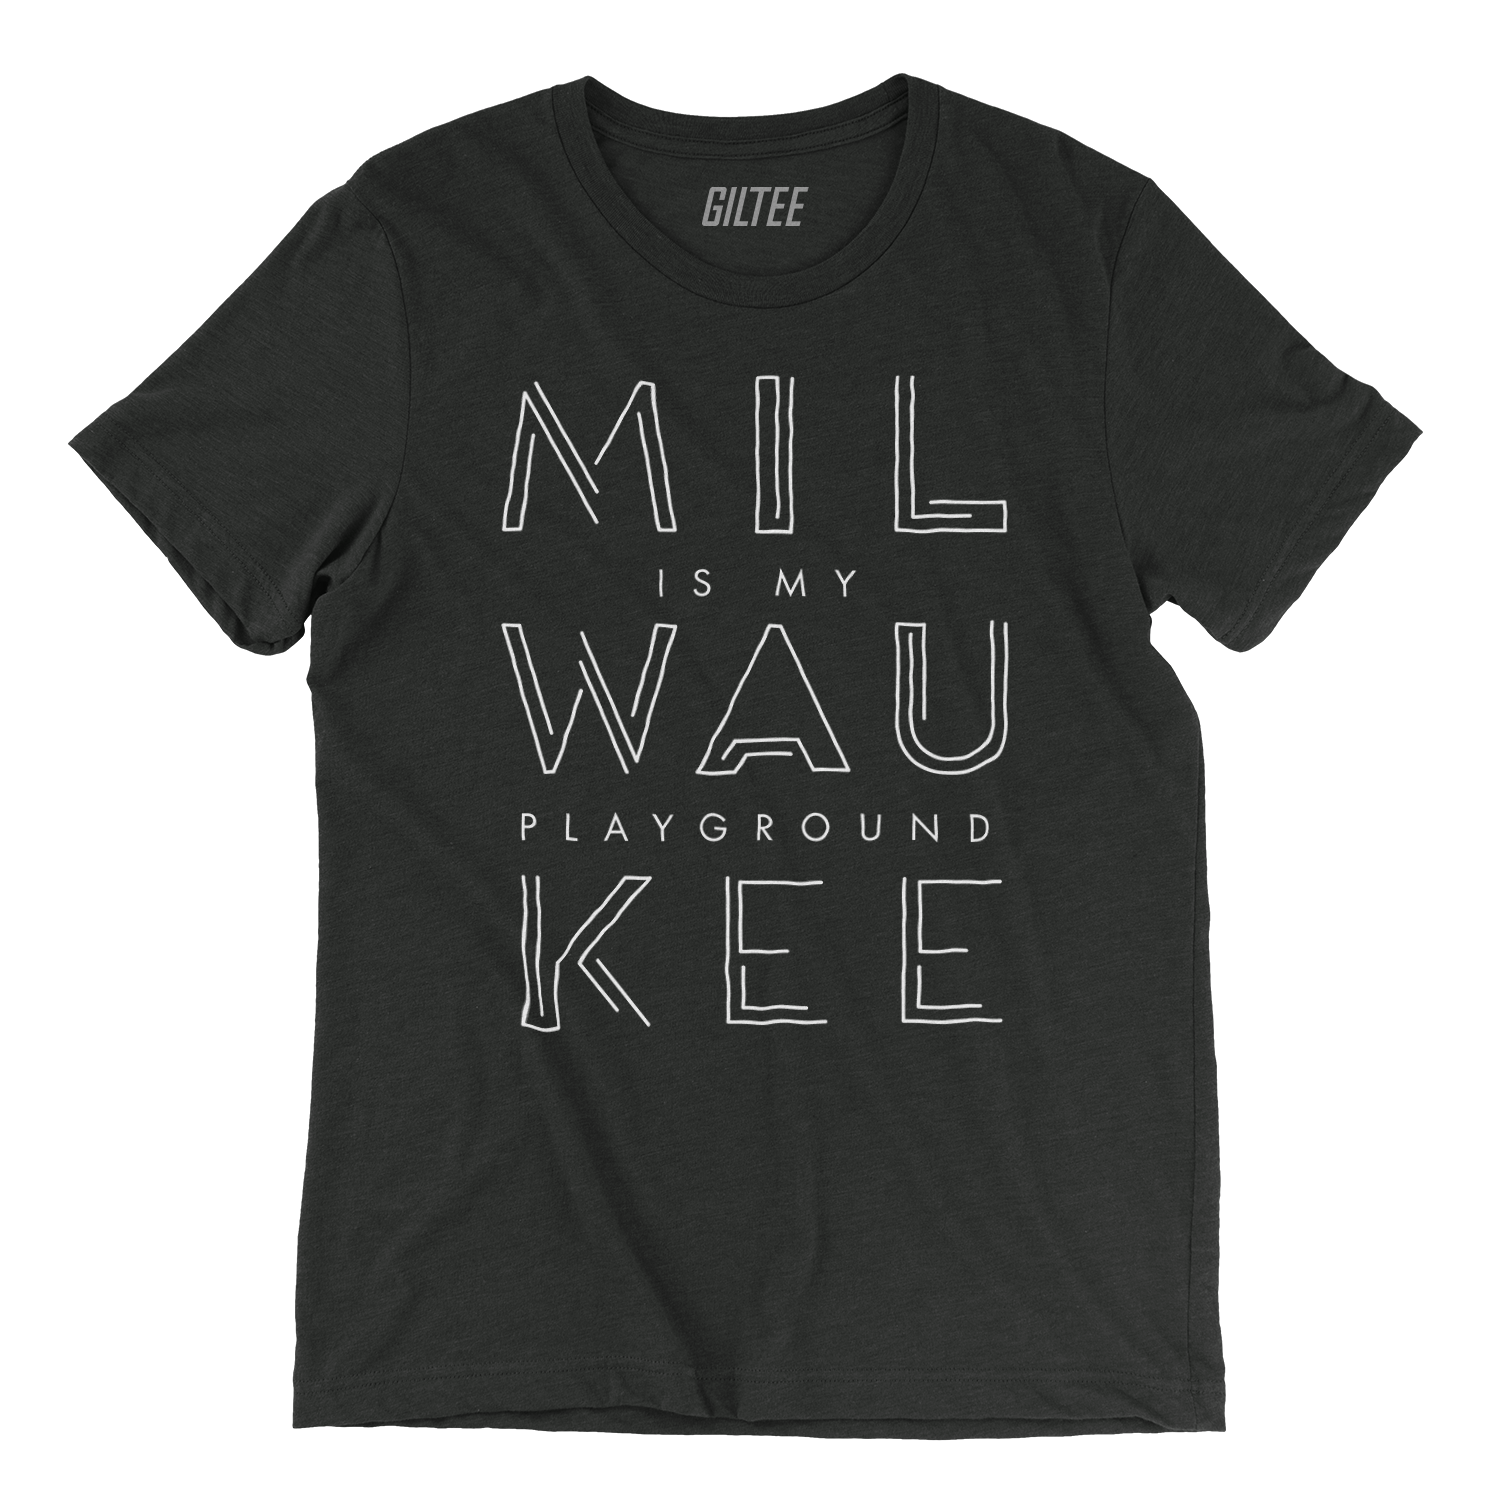 The Milwaukee Pipeline Charcoal Unisex Triblend Tee - GILTEE